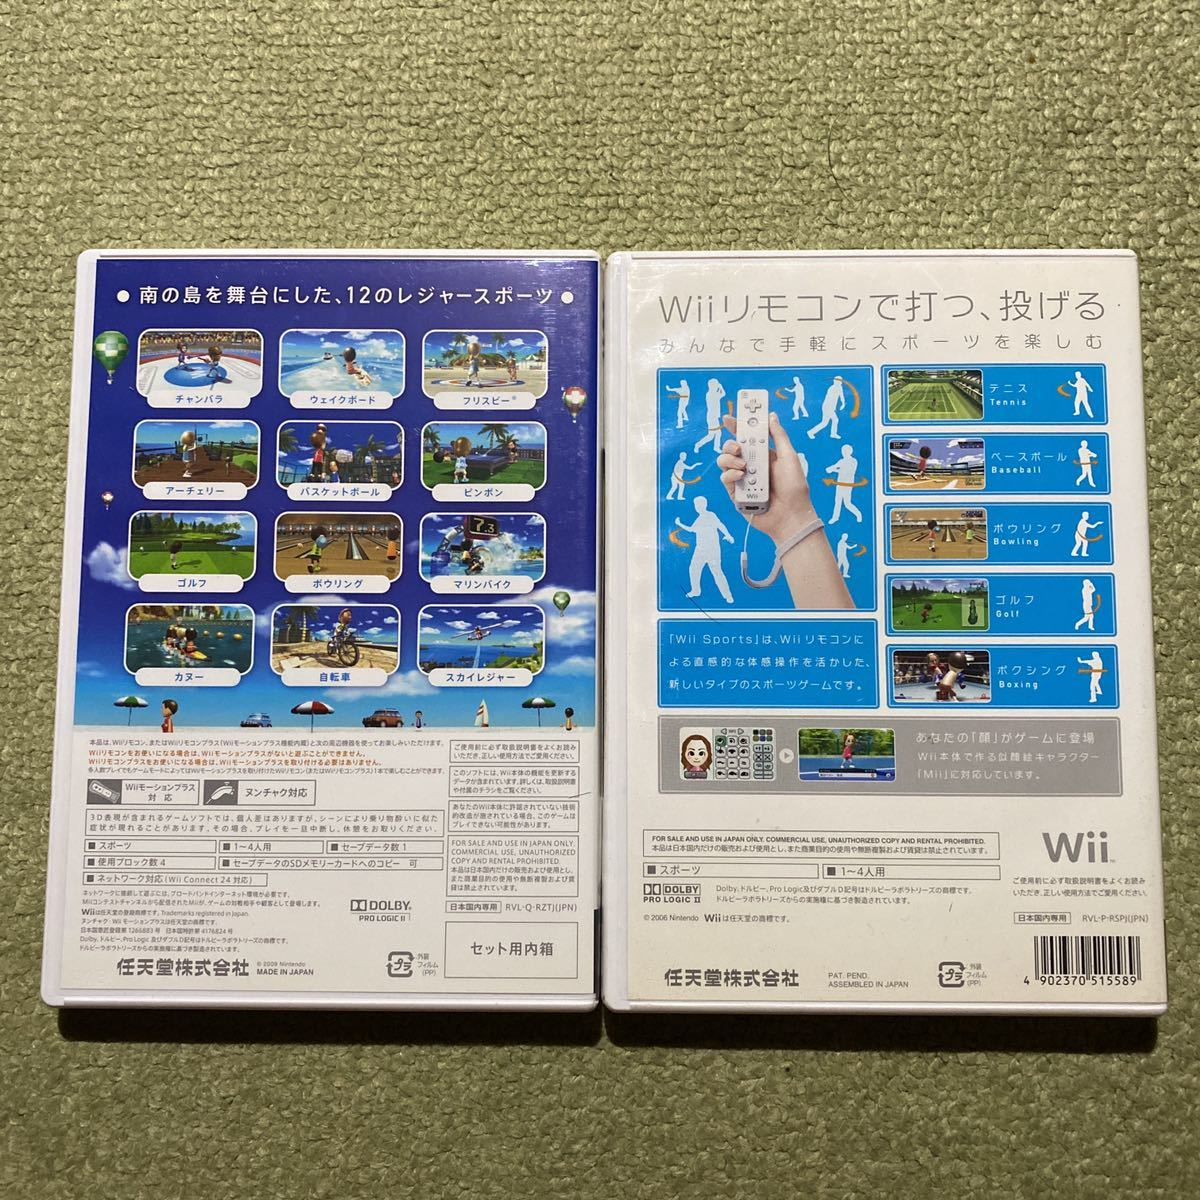 Wii Wii Sports Wiiスポーツリゾート 2本セット 送料無料